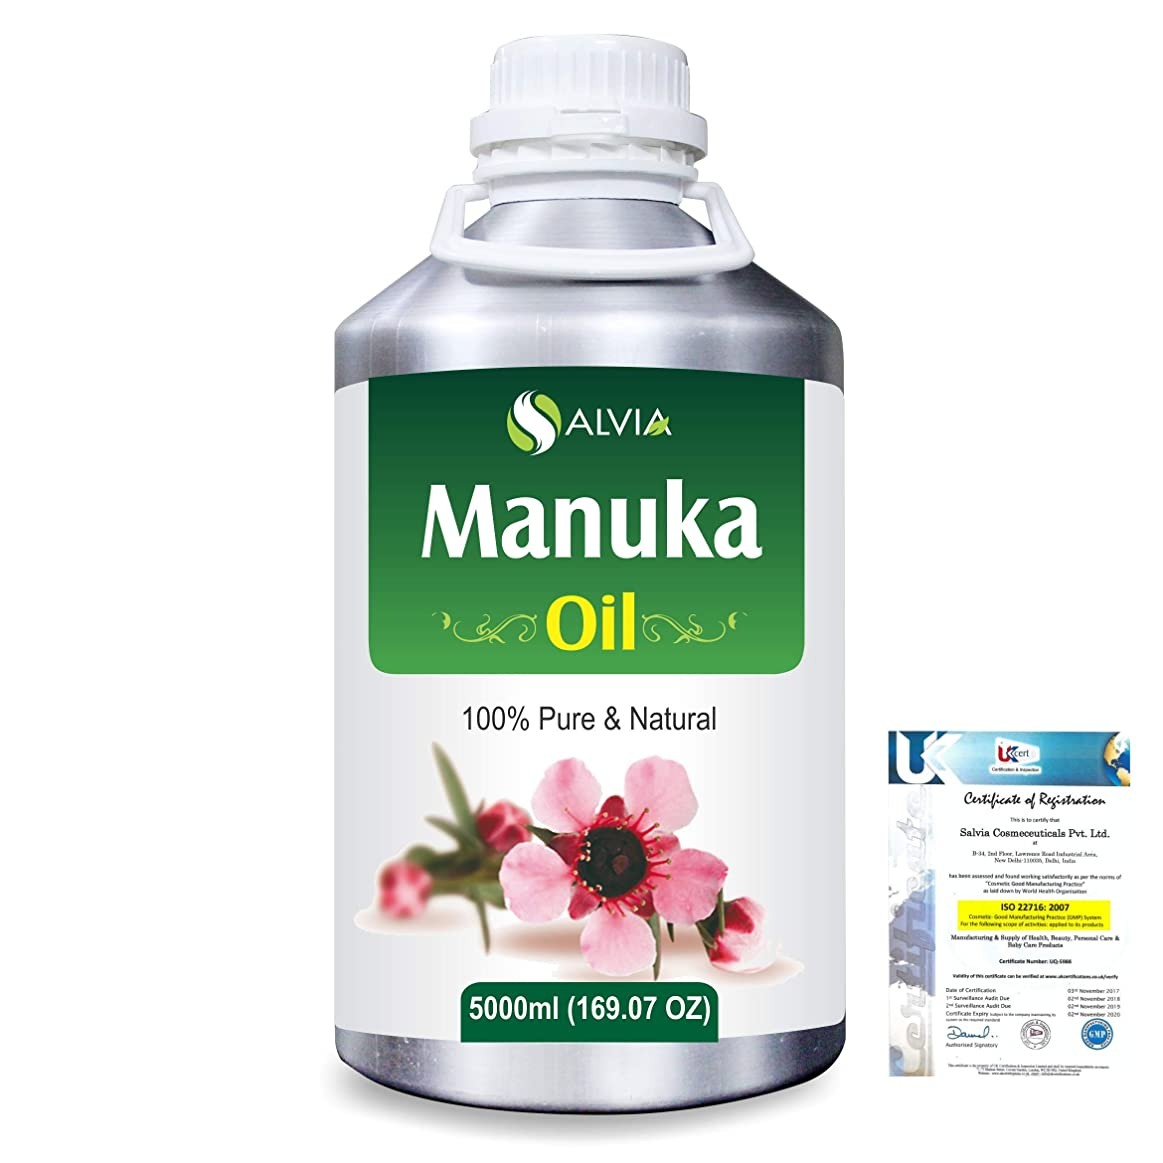 耳うがい舗装するManuka (Leptospermum scoparium) 100% Natural Pure Essential Oil 5000ml/169fl.oz.